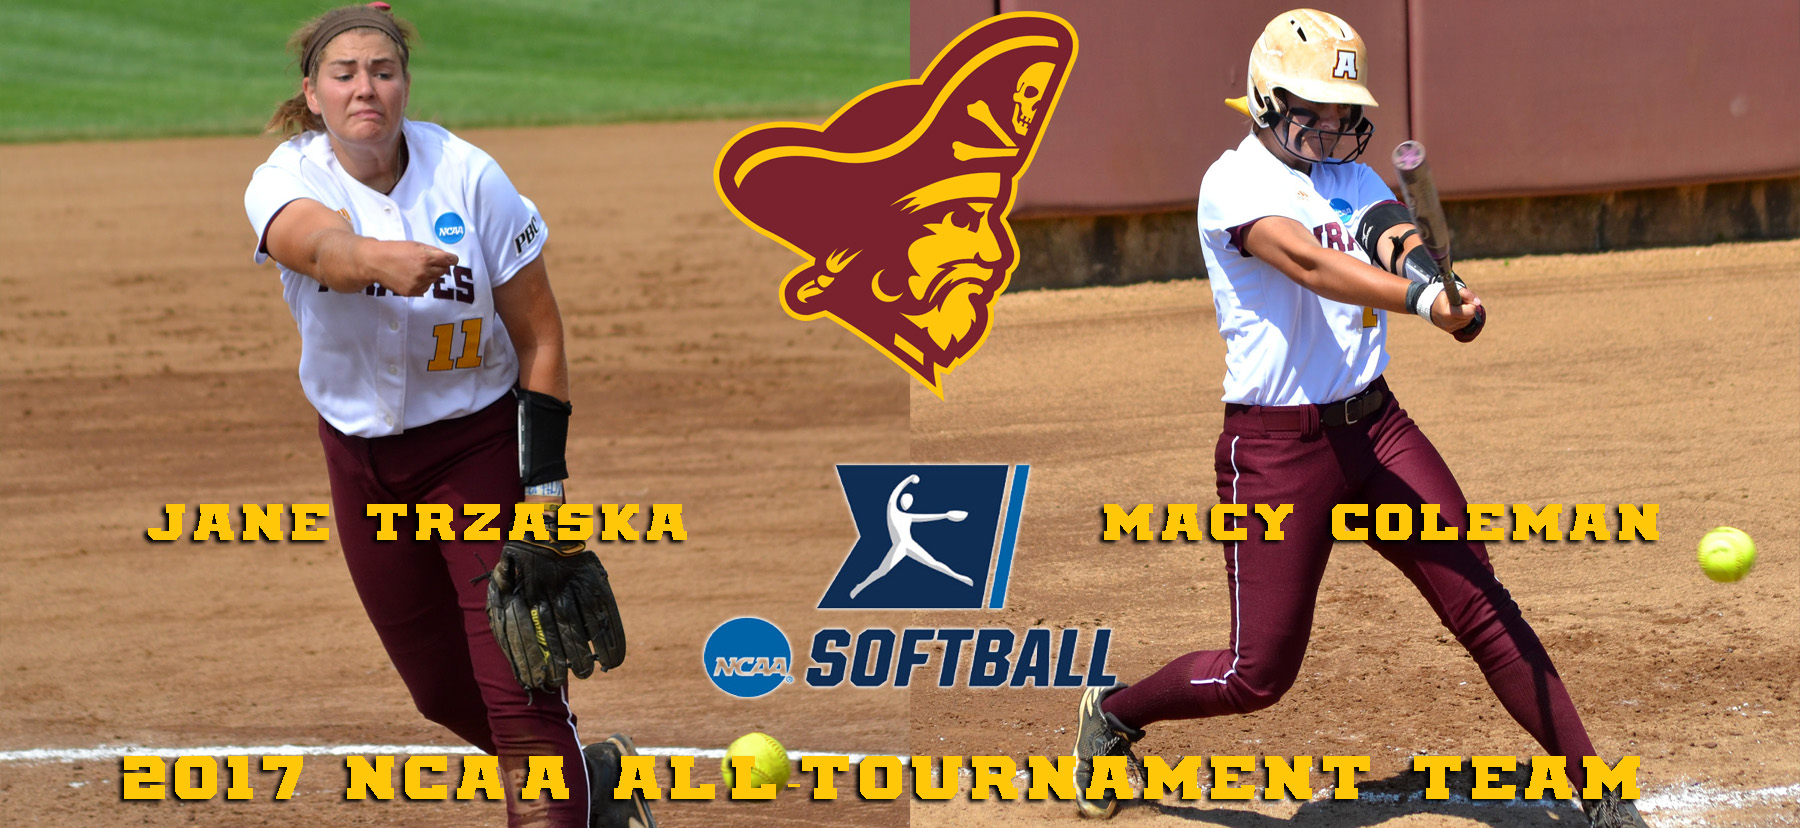 Jane Trzaska, Macy Coleman Earn NCAA All-Tournament Team Honors